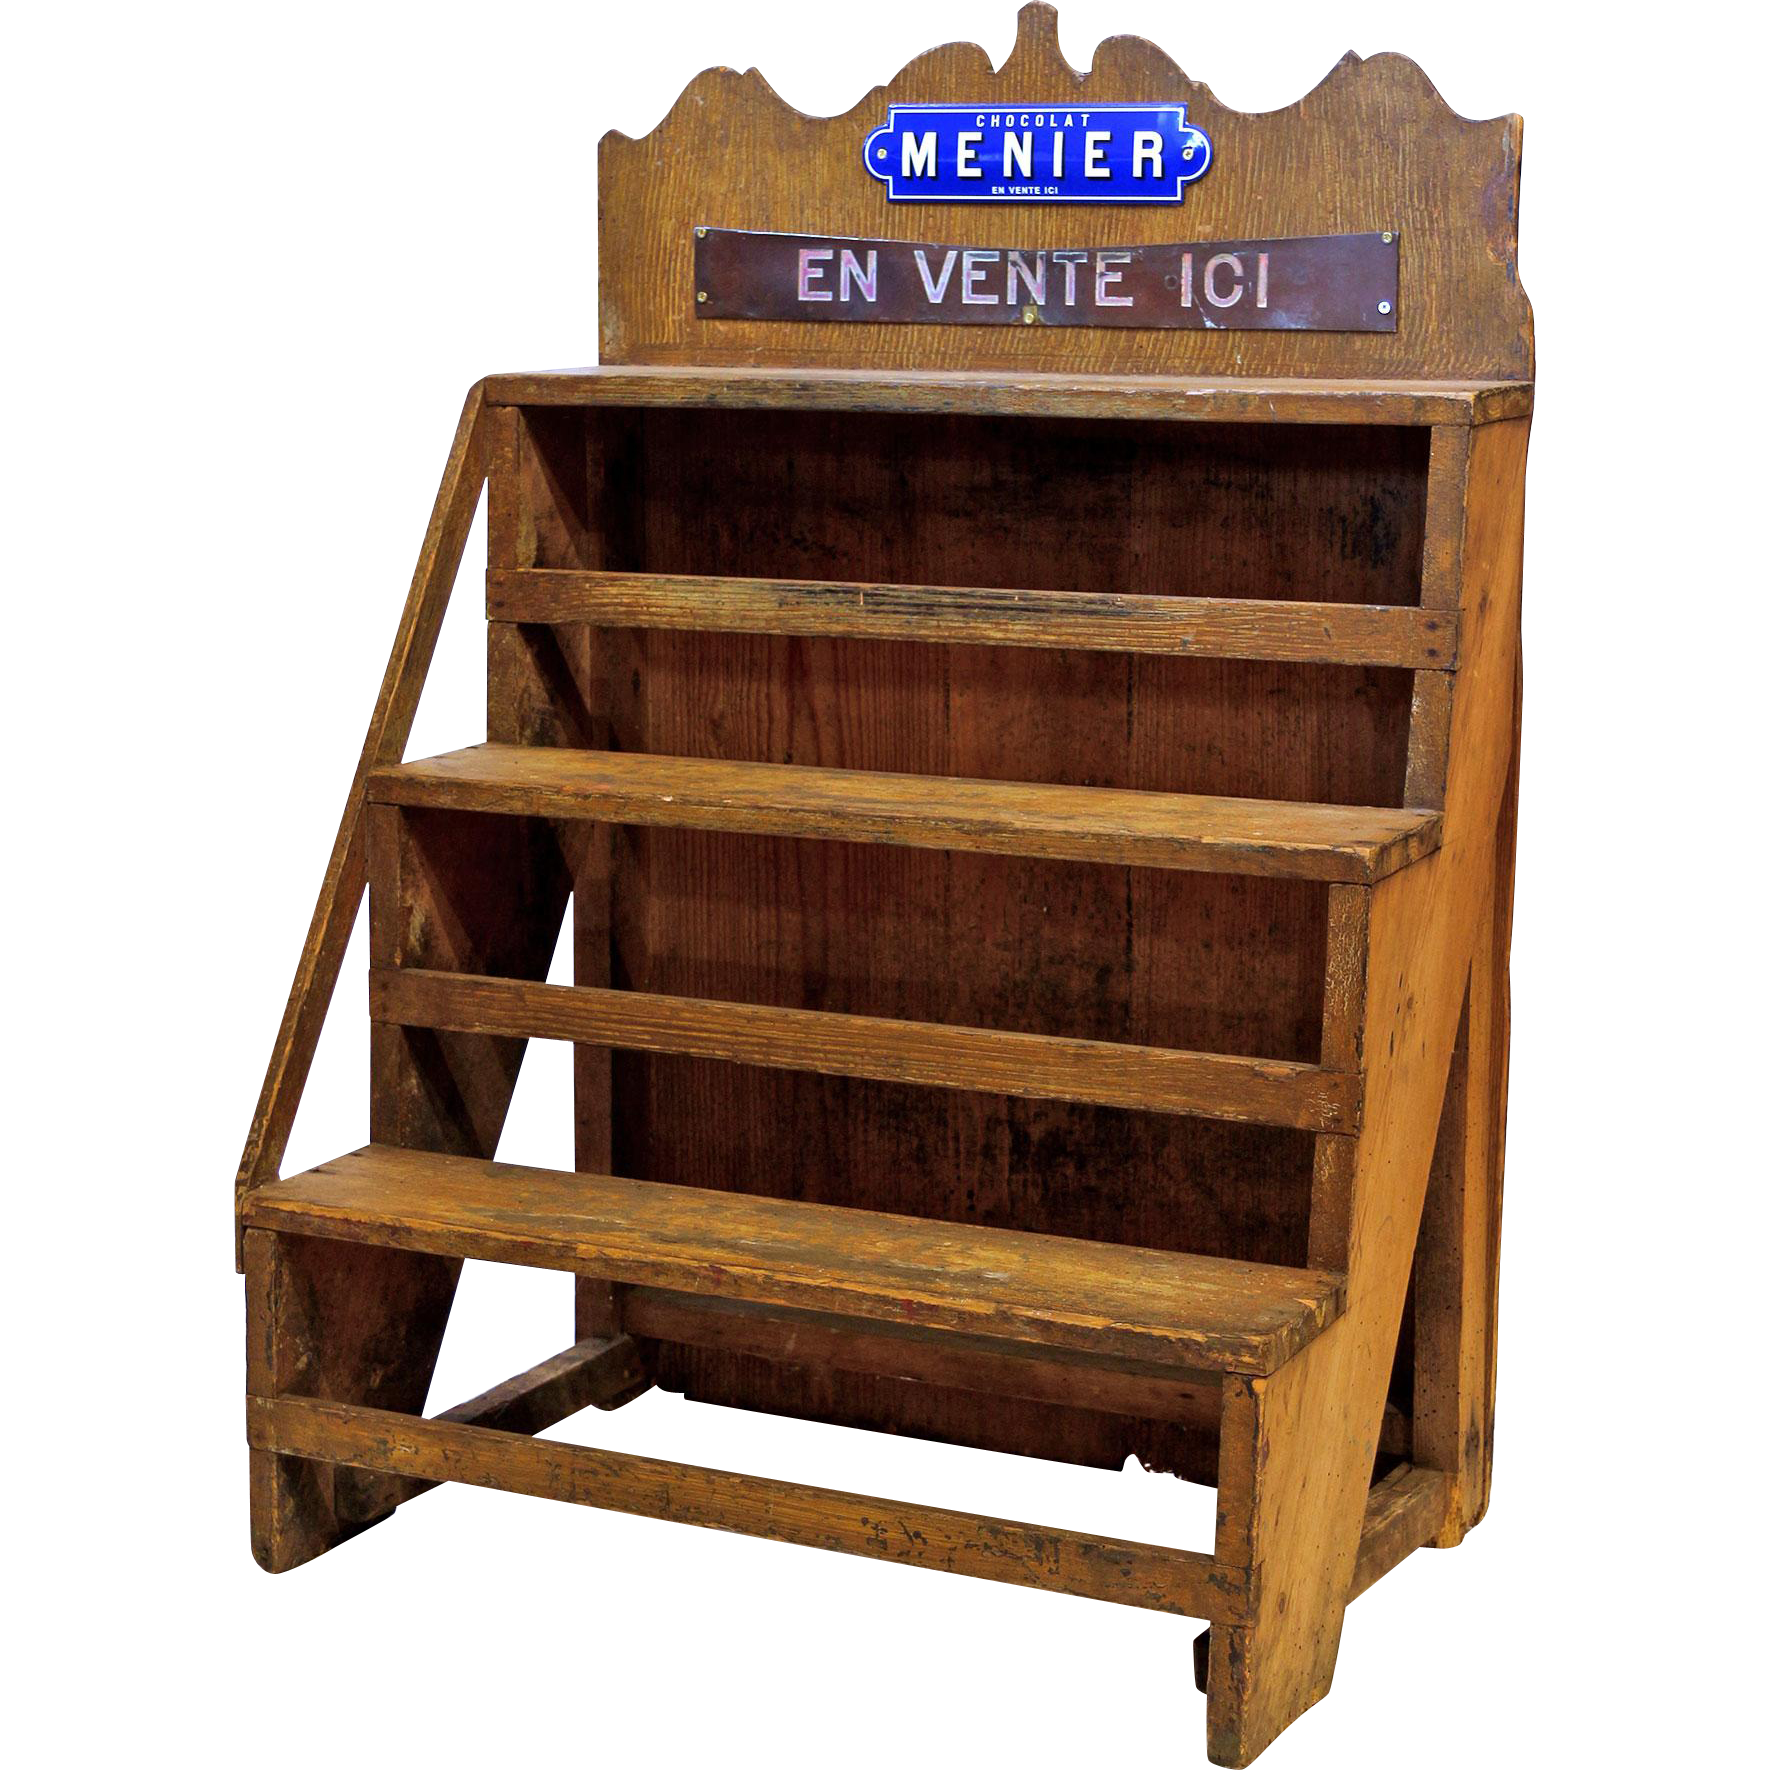 Old Wooden Chocolate Shop Shelfrack from France.